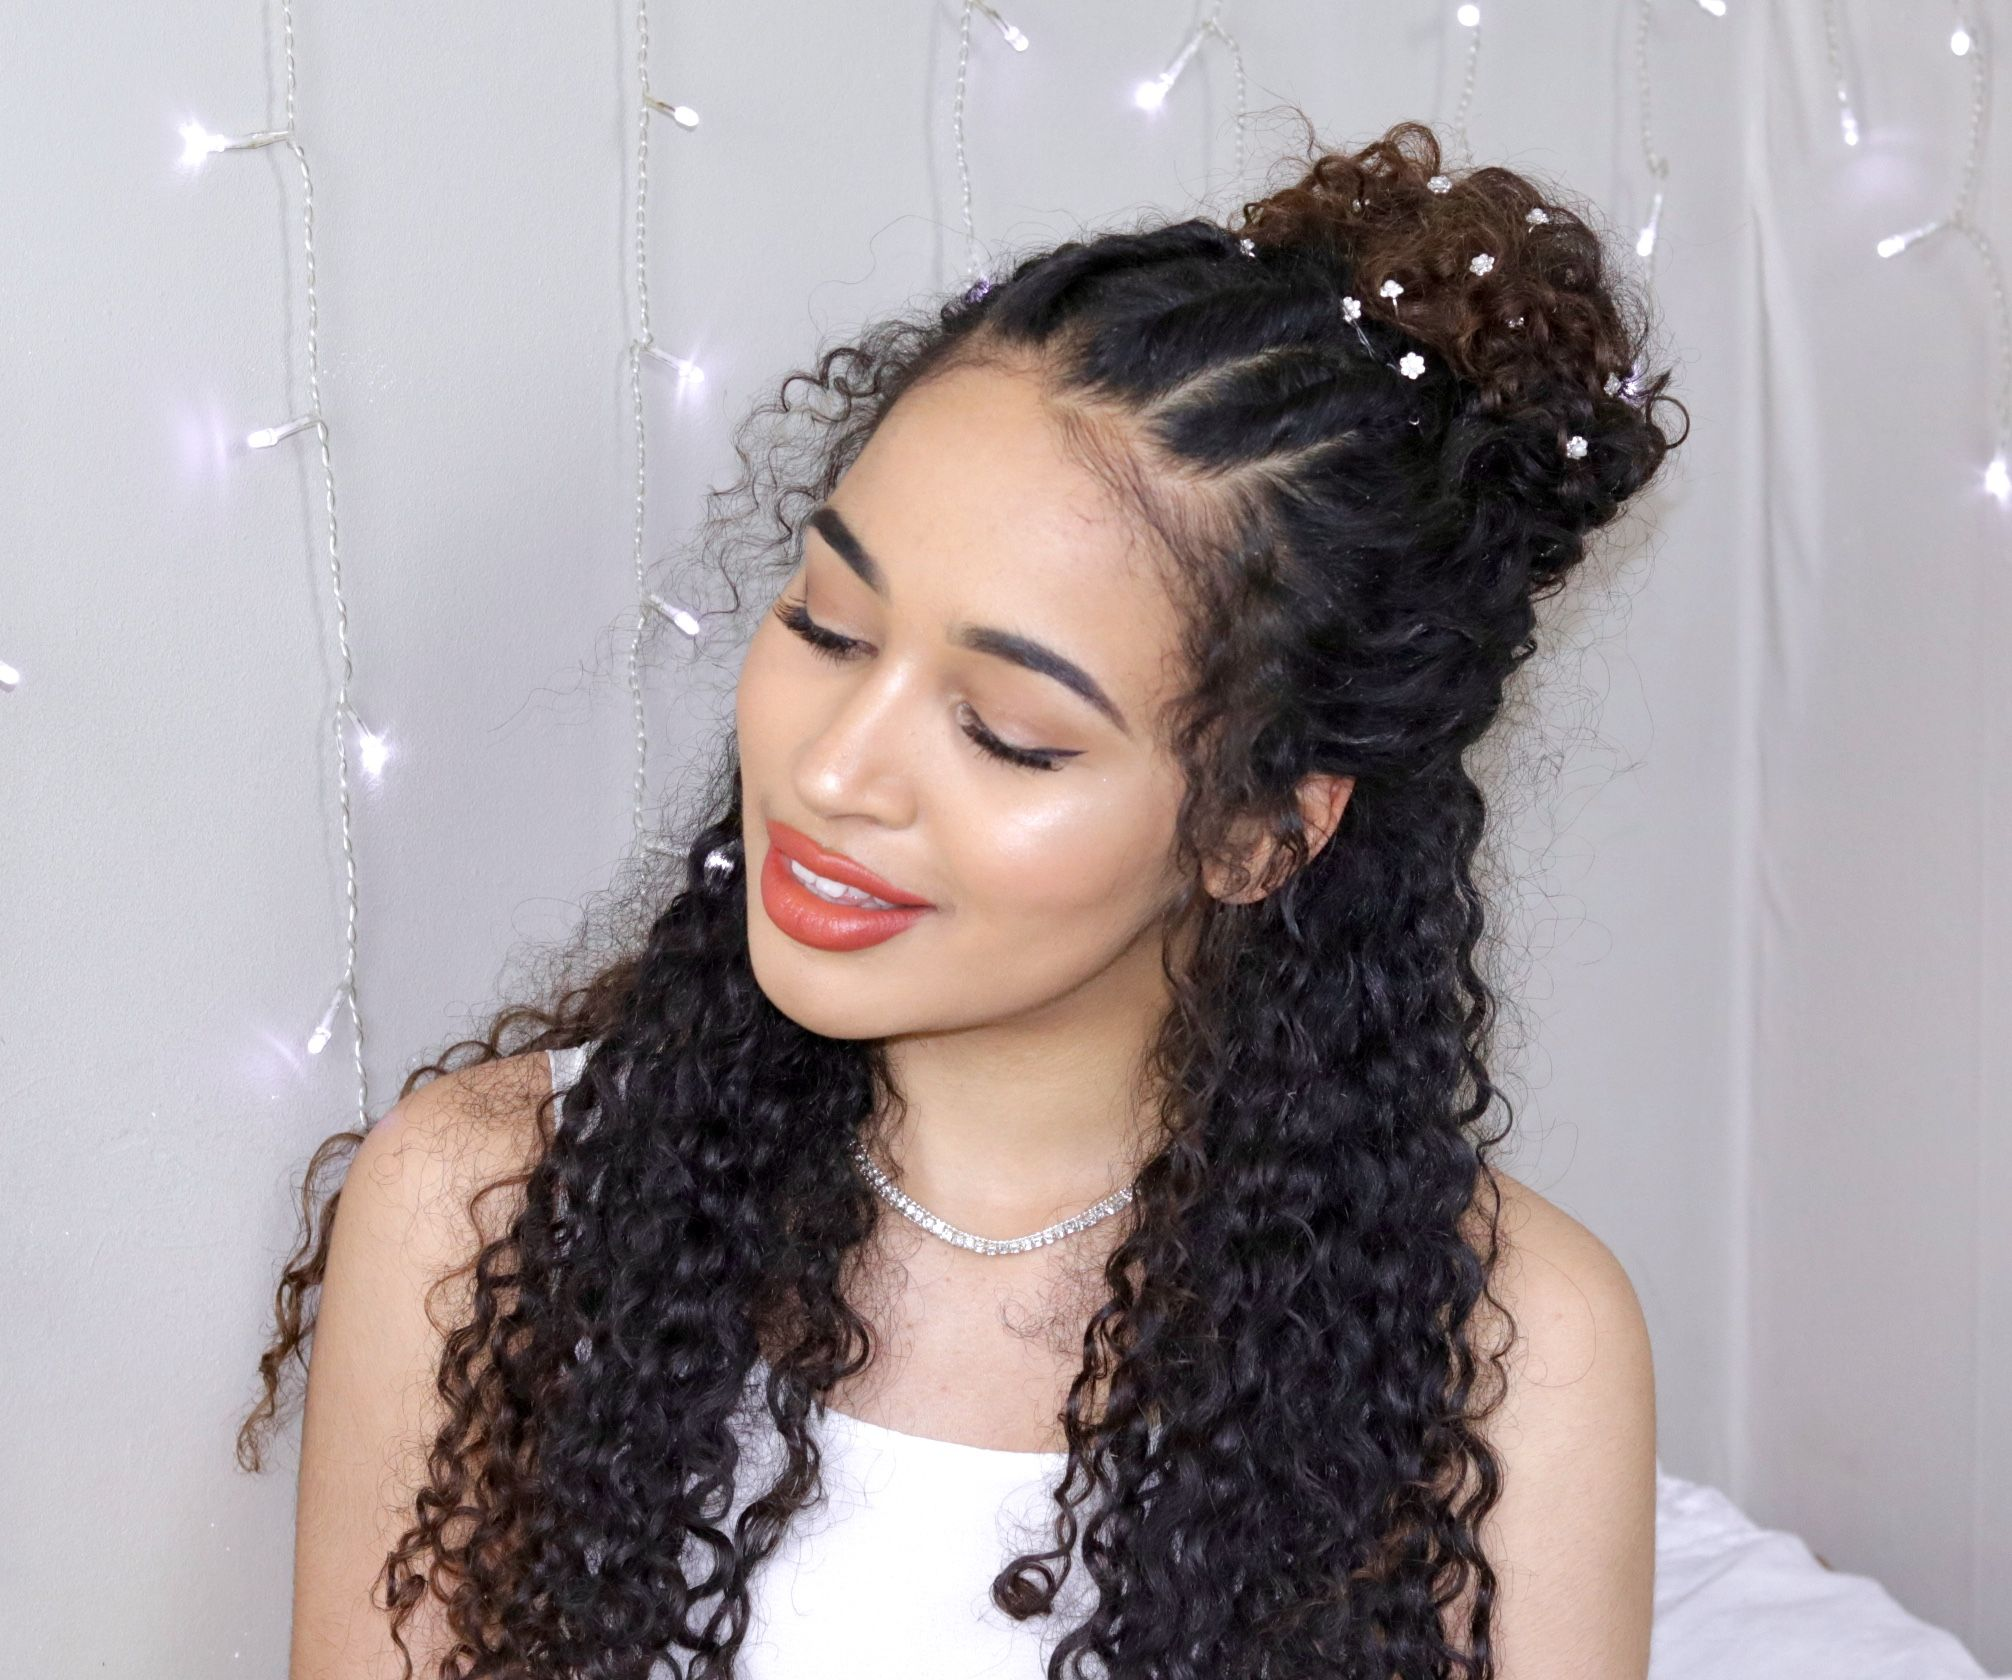 Pin By Giselle Valentin On Hairstyles Curly Hair Styles Natural Curls Hairstyles Curly Hair Tips